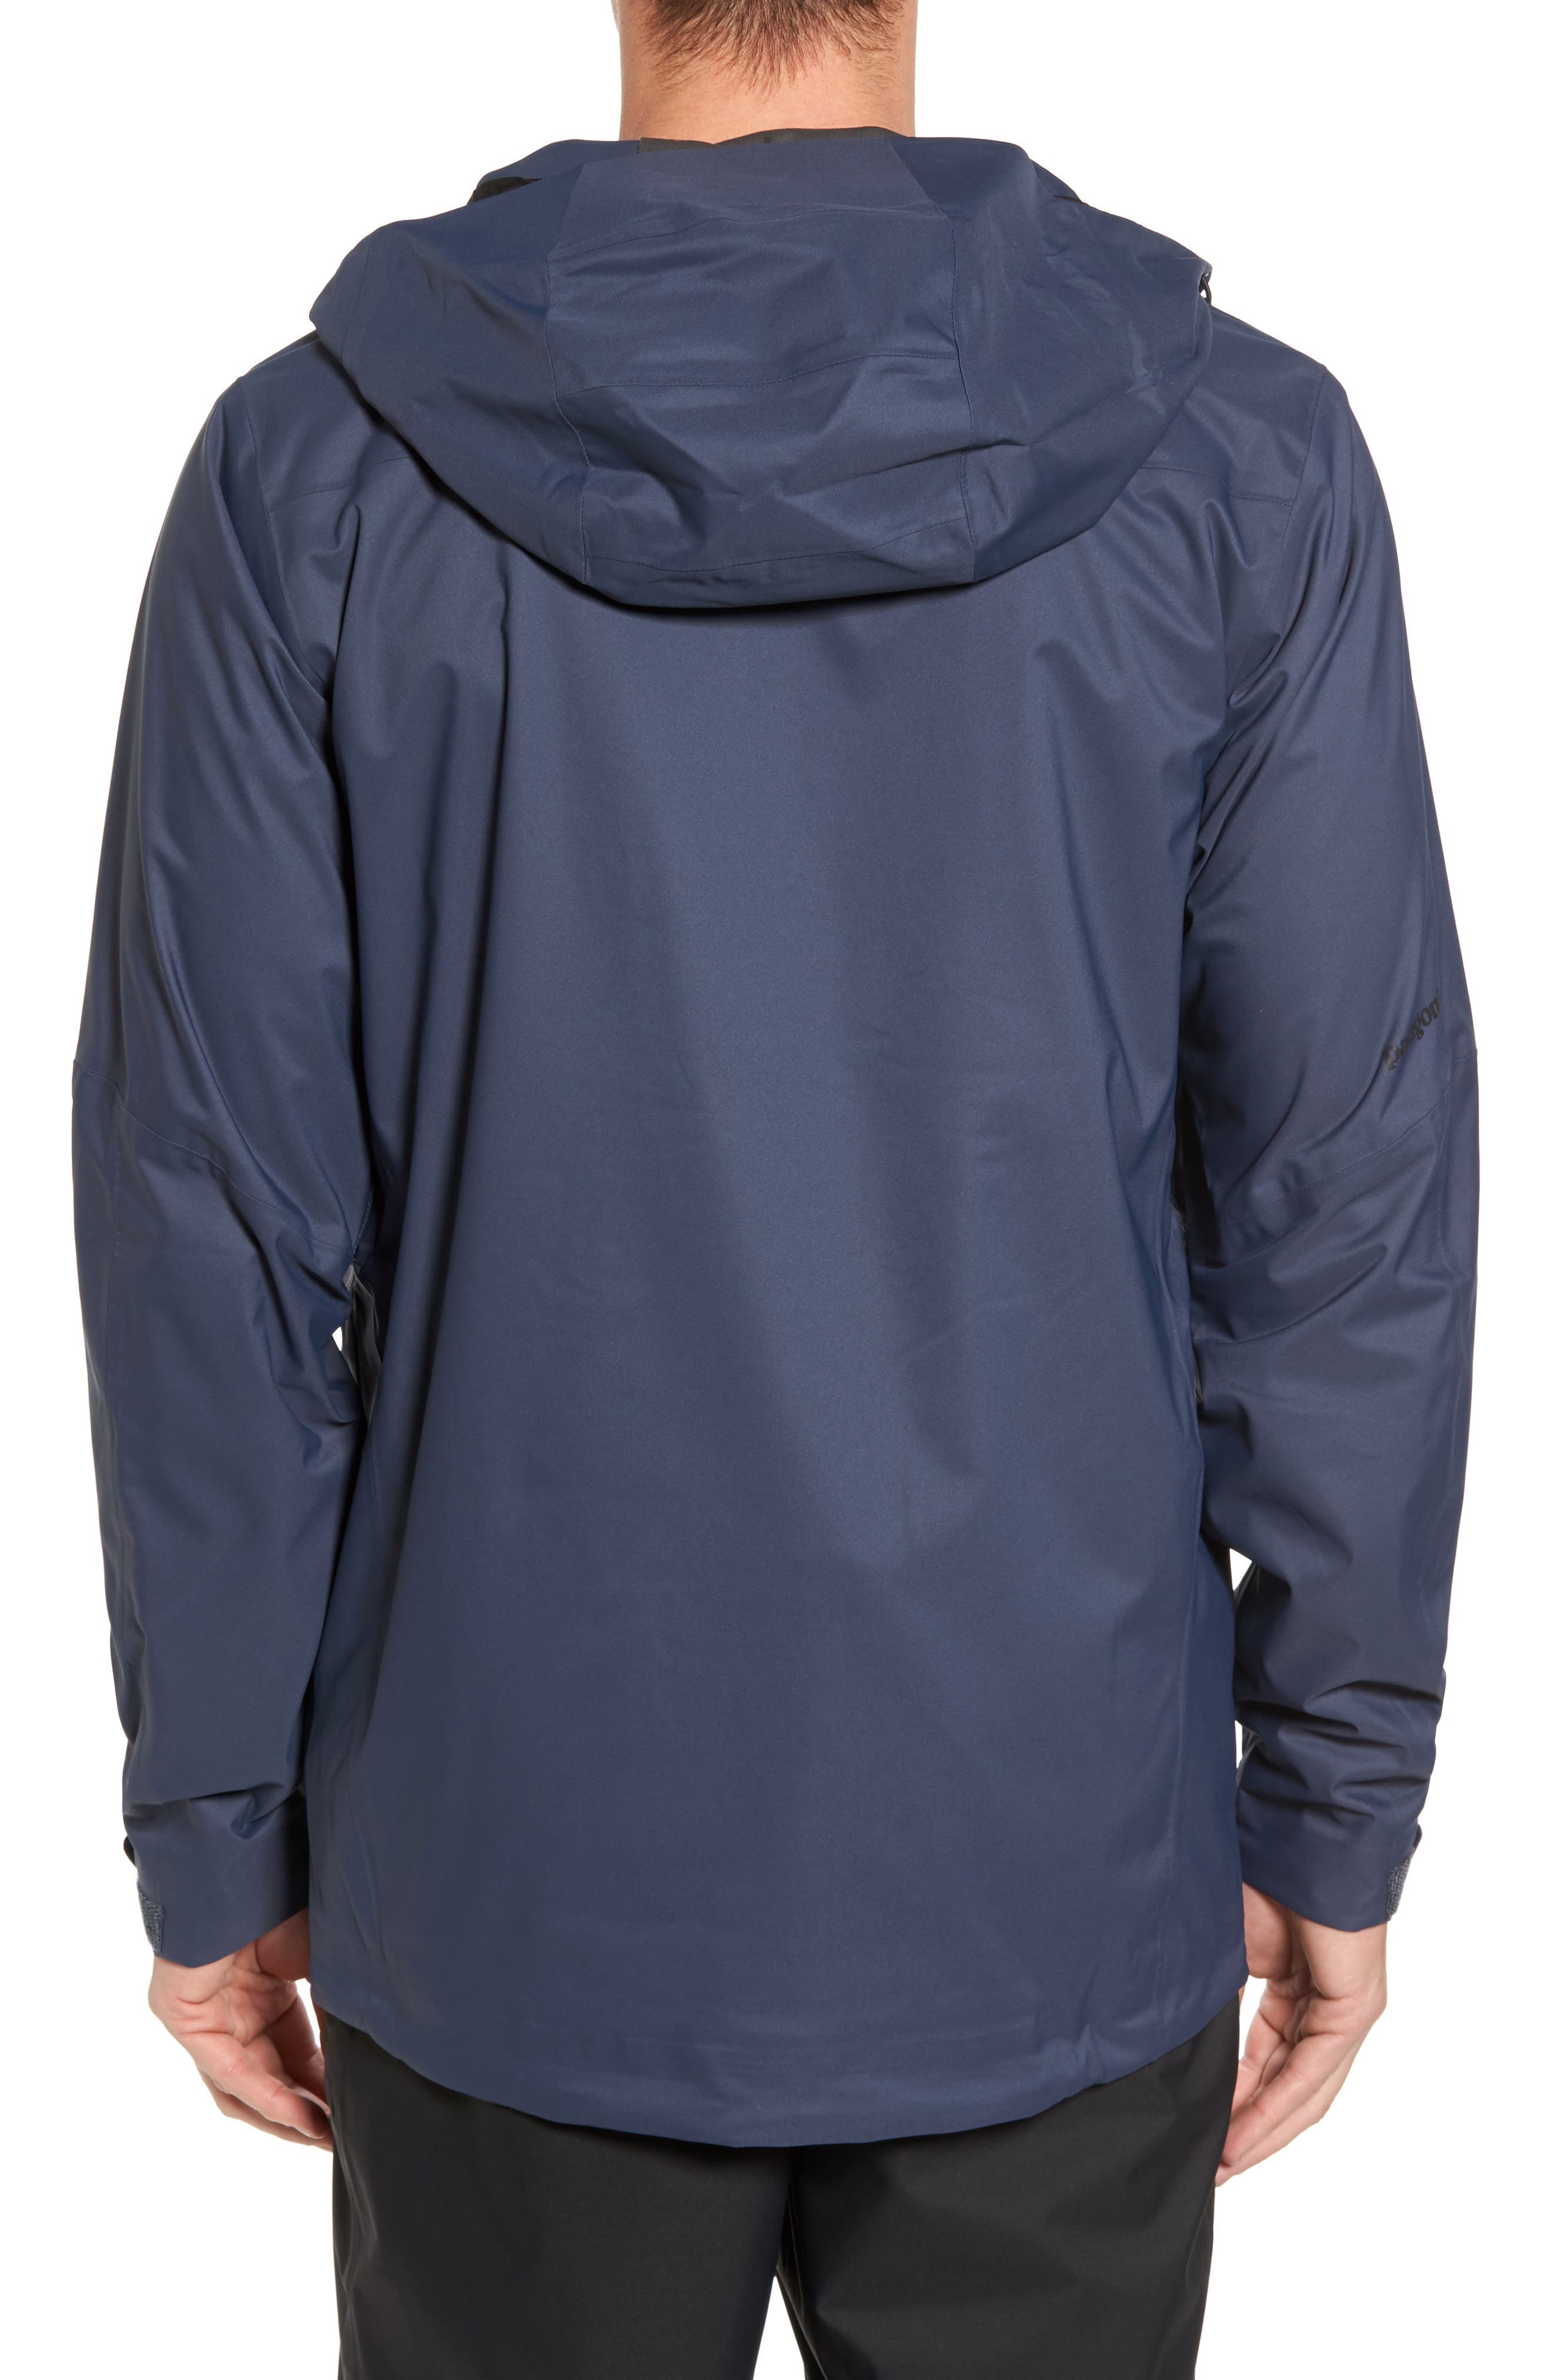 Snowshot 3-in-1 Waterproof Snowsports Jacket,                             Alternate thumbnail 2, color,                             Smolder Blue